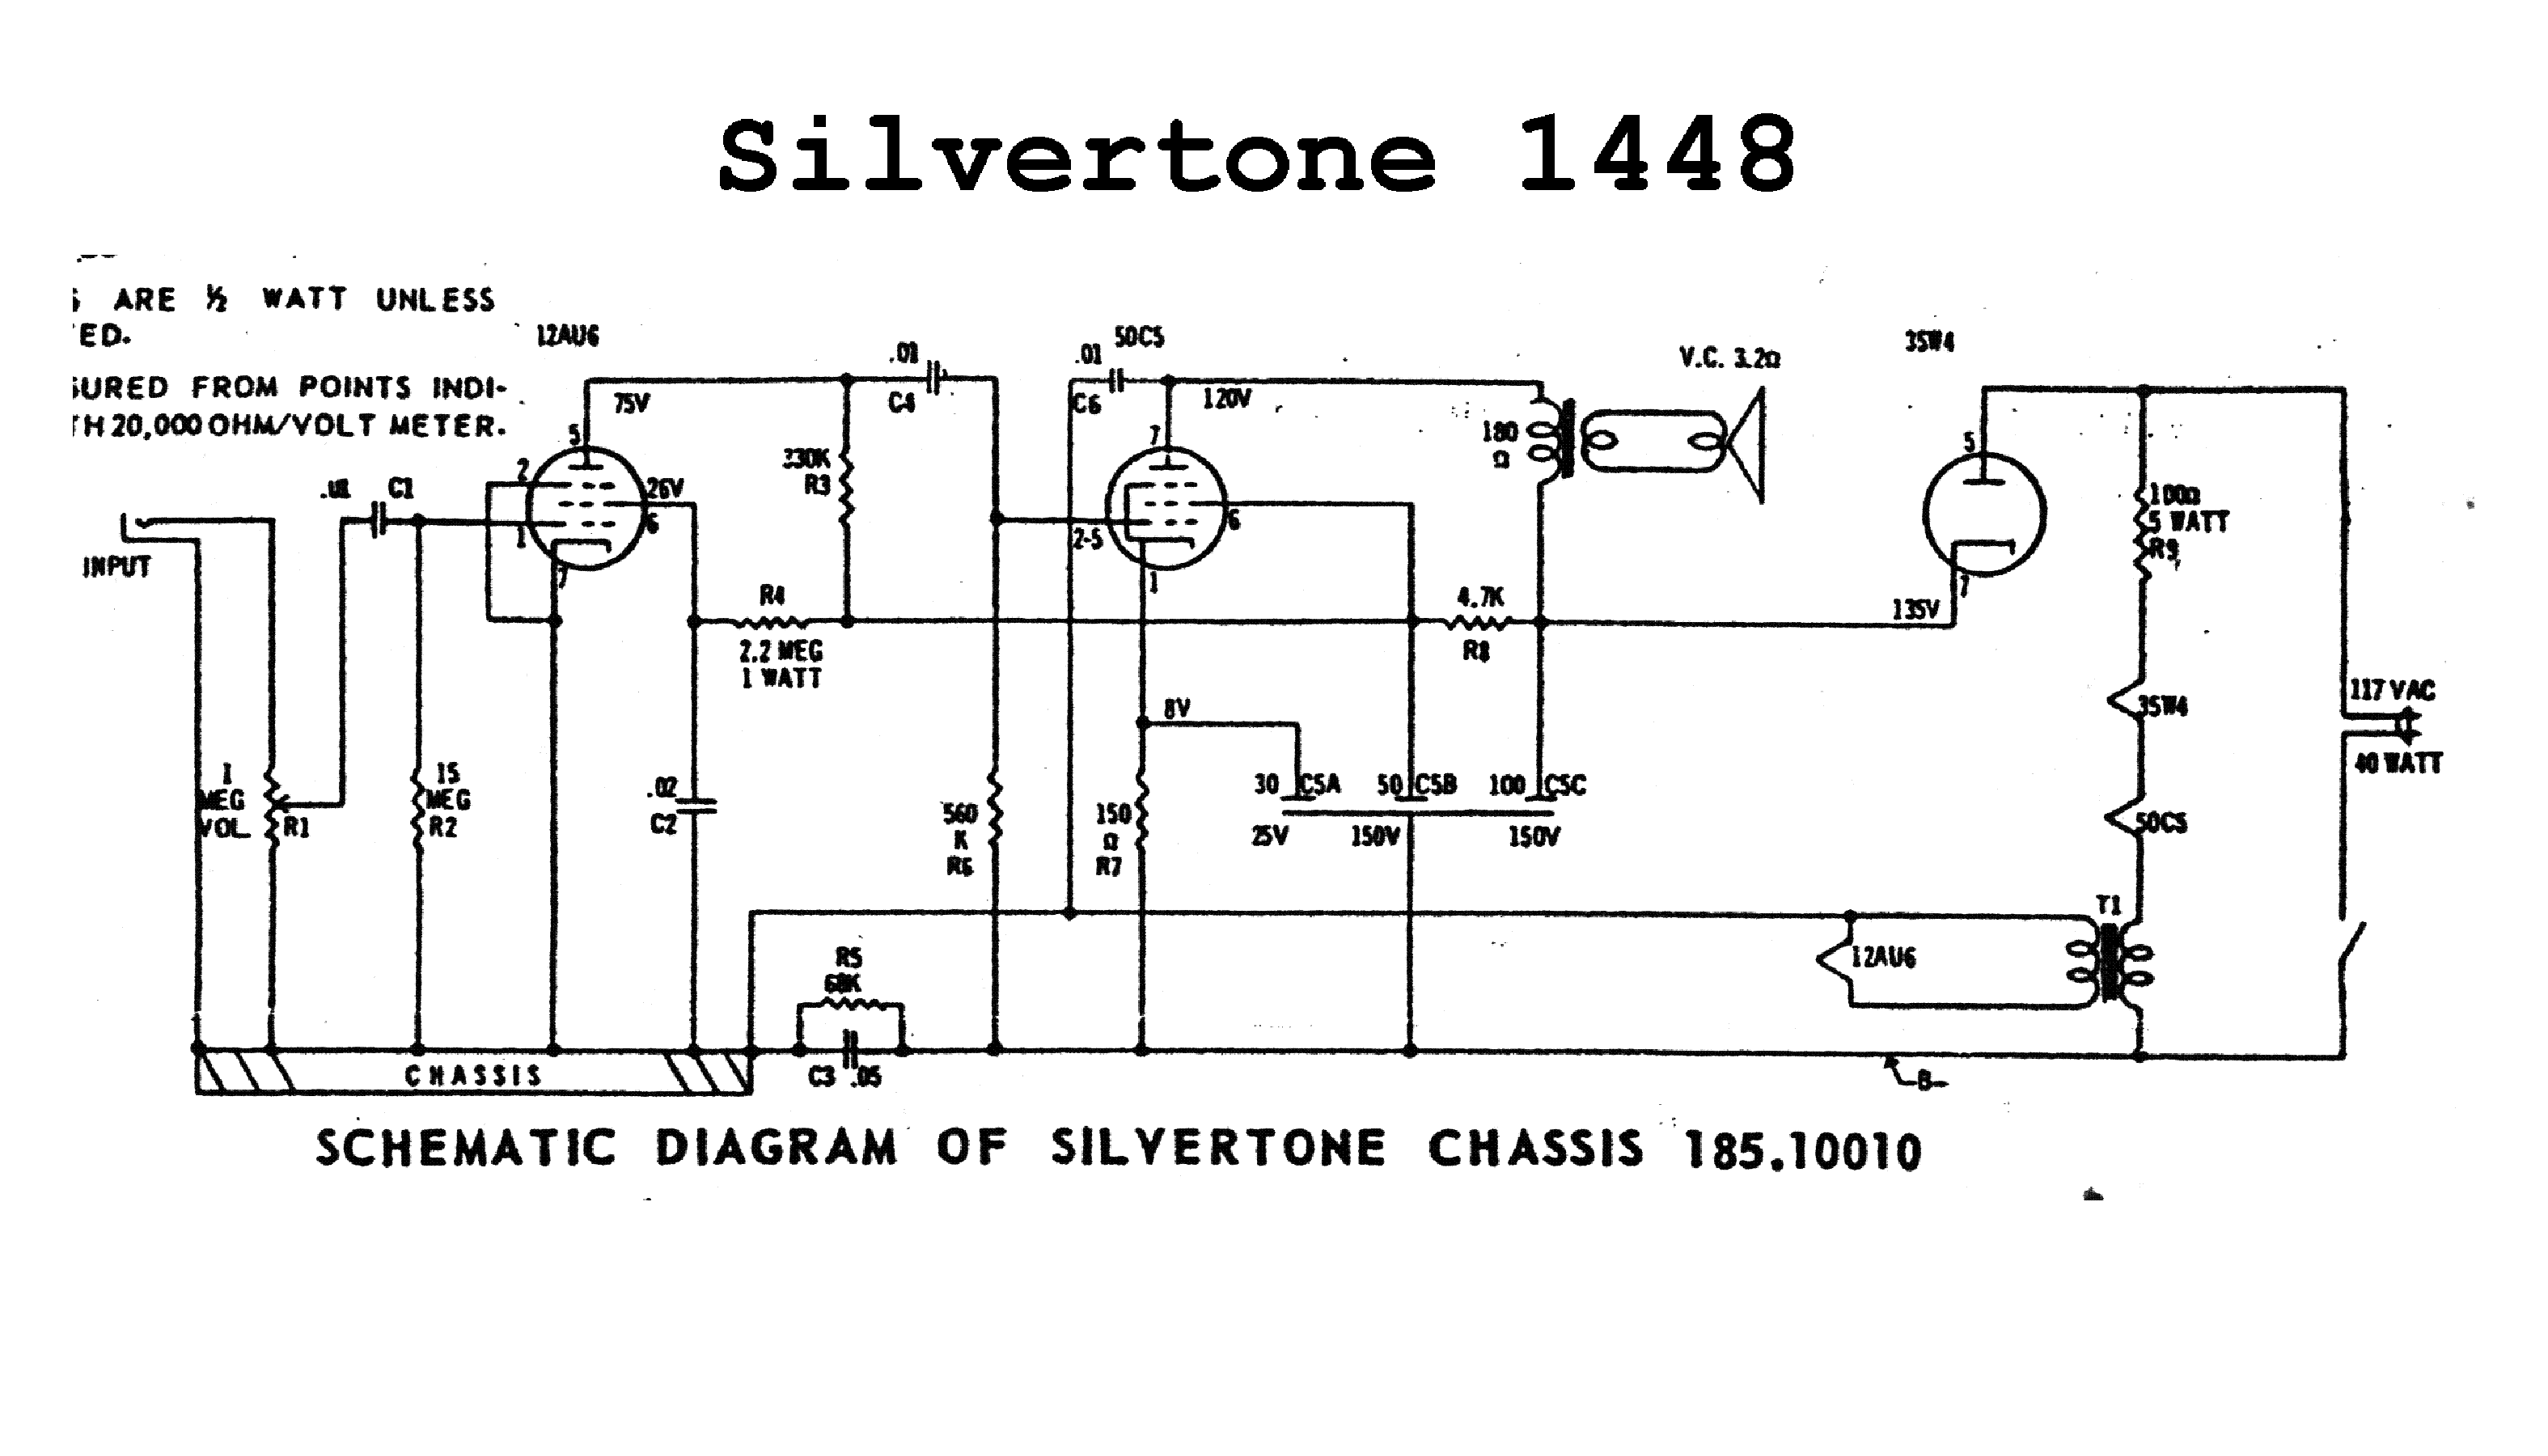 silvertone_1448_sch.pdf_1 silvertone_1448_sch pdf_1 png silverton wiring diagram at eliteediting.co